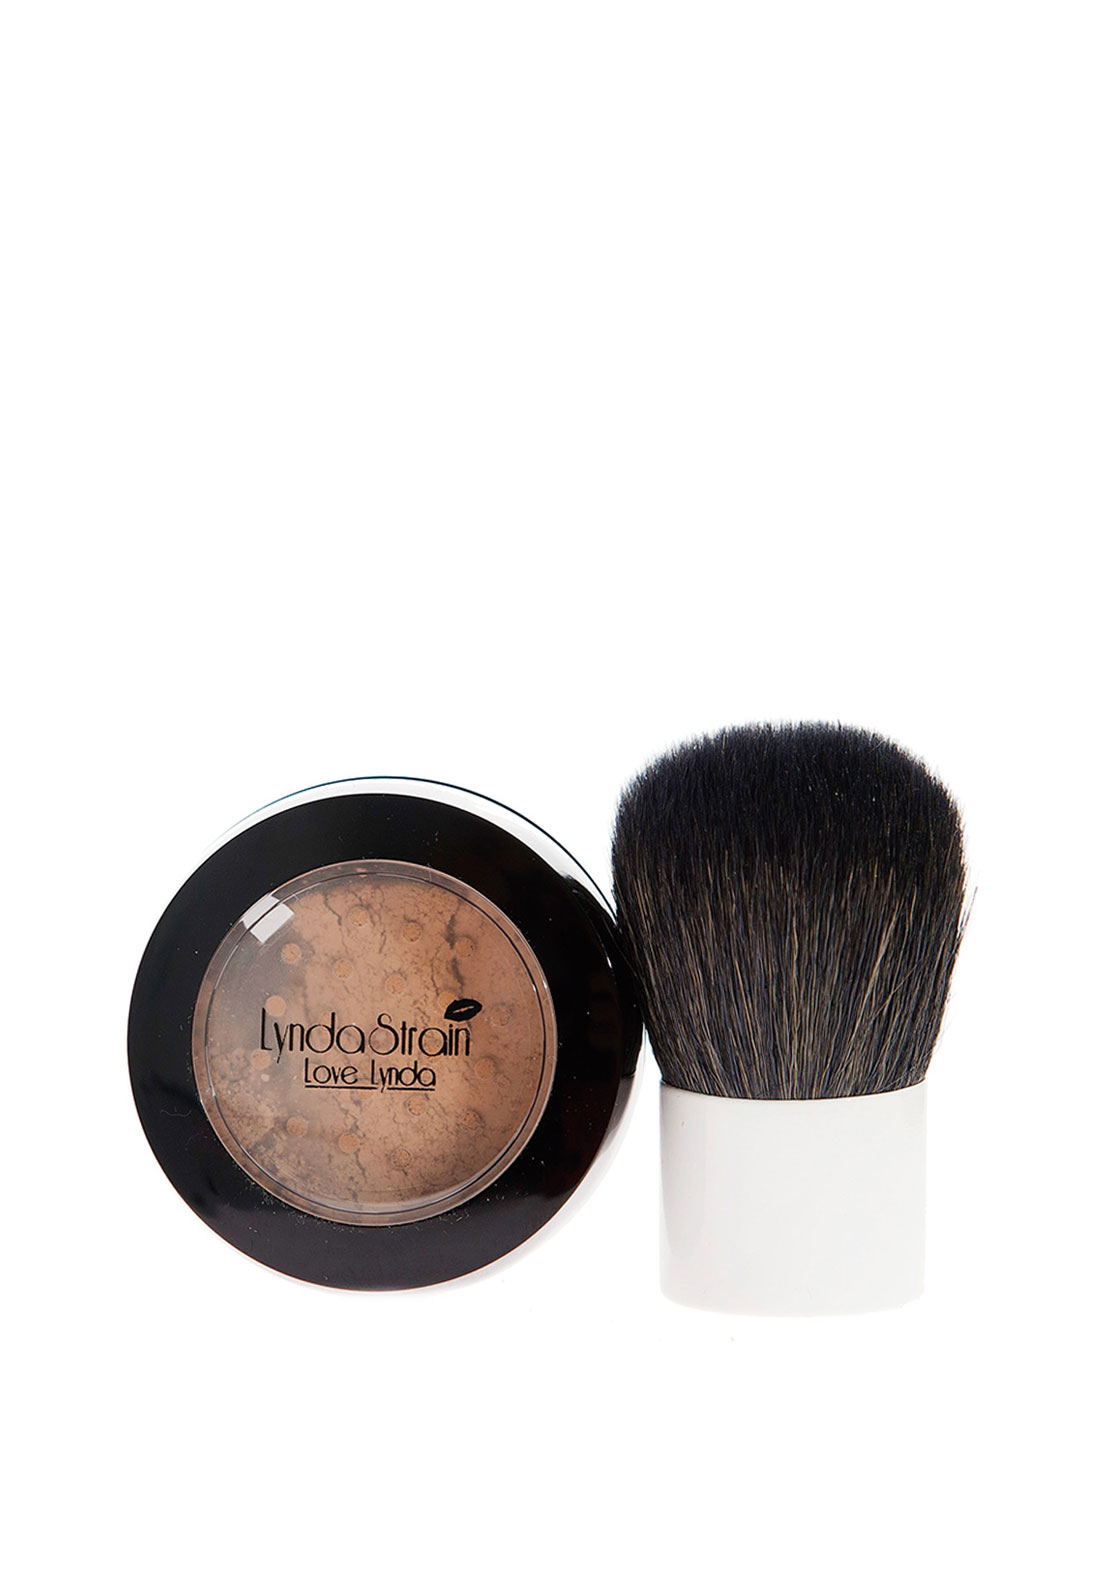 Lynda Strain Love Lynda Mineral Loose Foundation, Warm 4